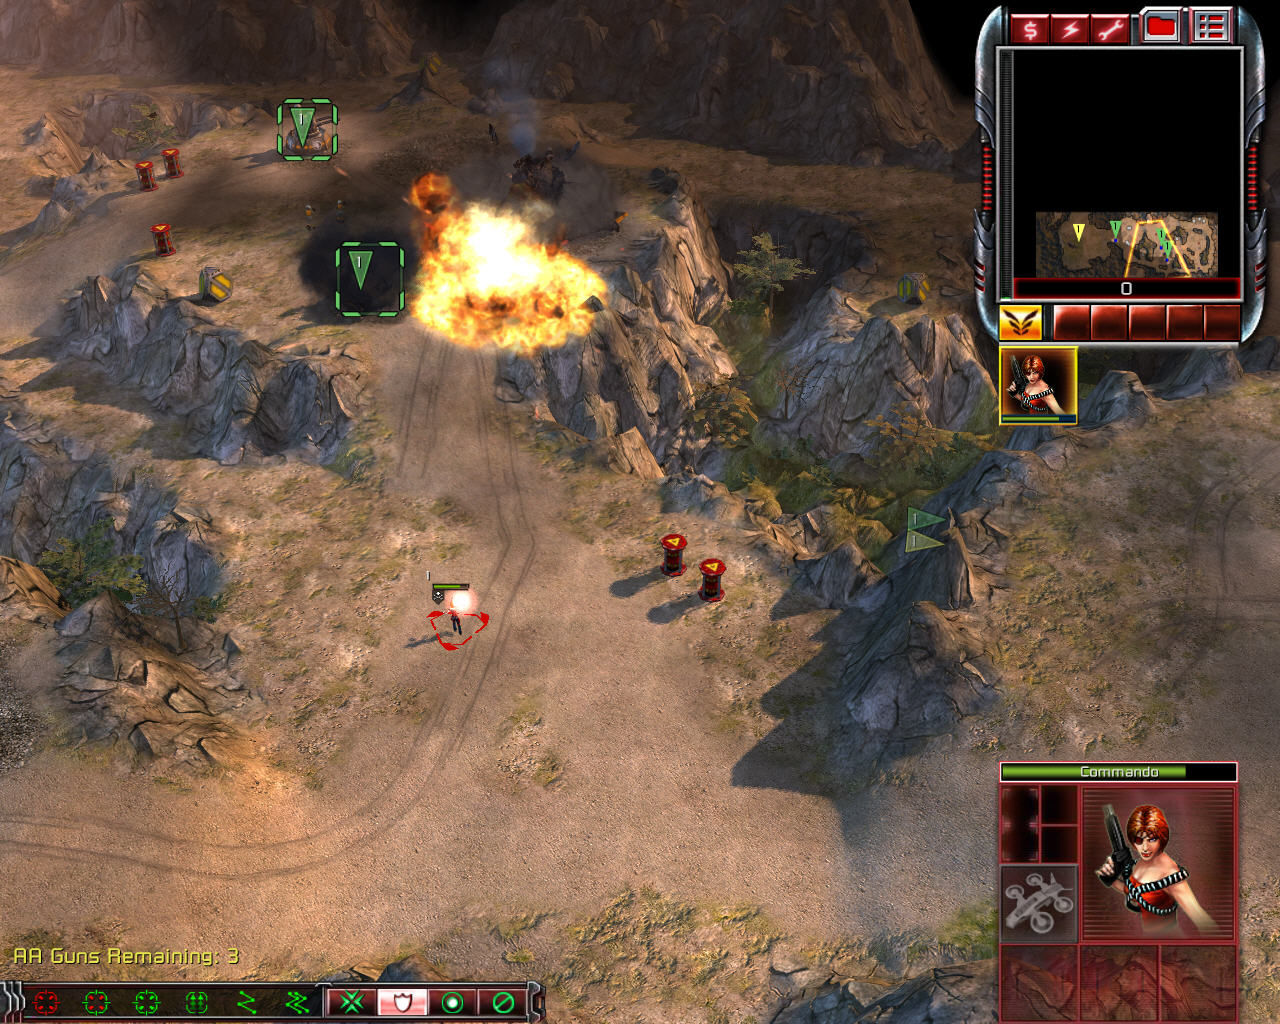 Command & Conquer 3: Tiberium Wars Windows You can shot at red barrels to eliminate the nearby buildings and units in a big explosion.